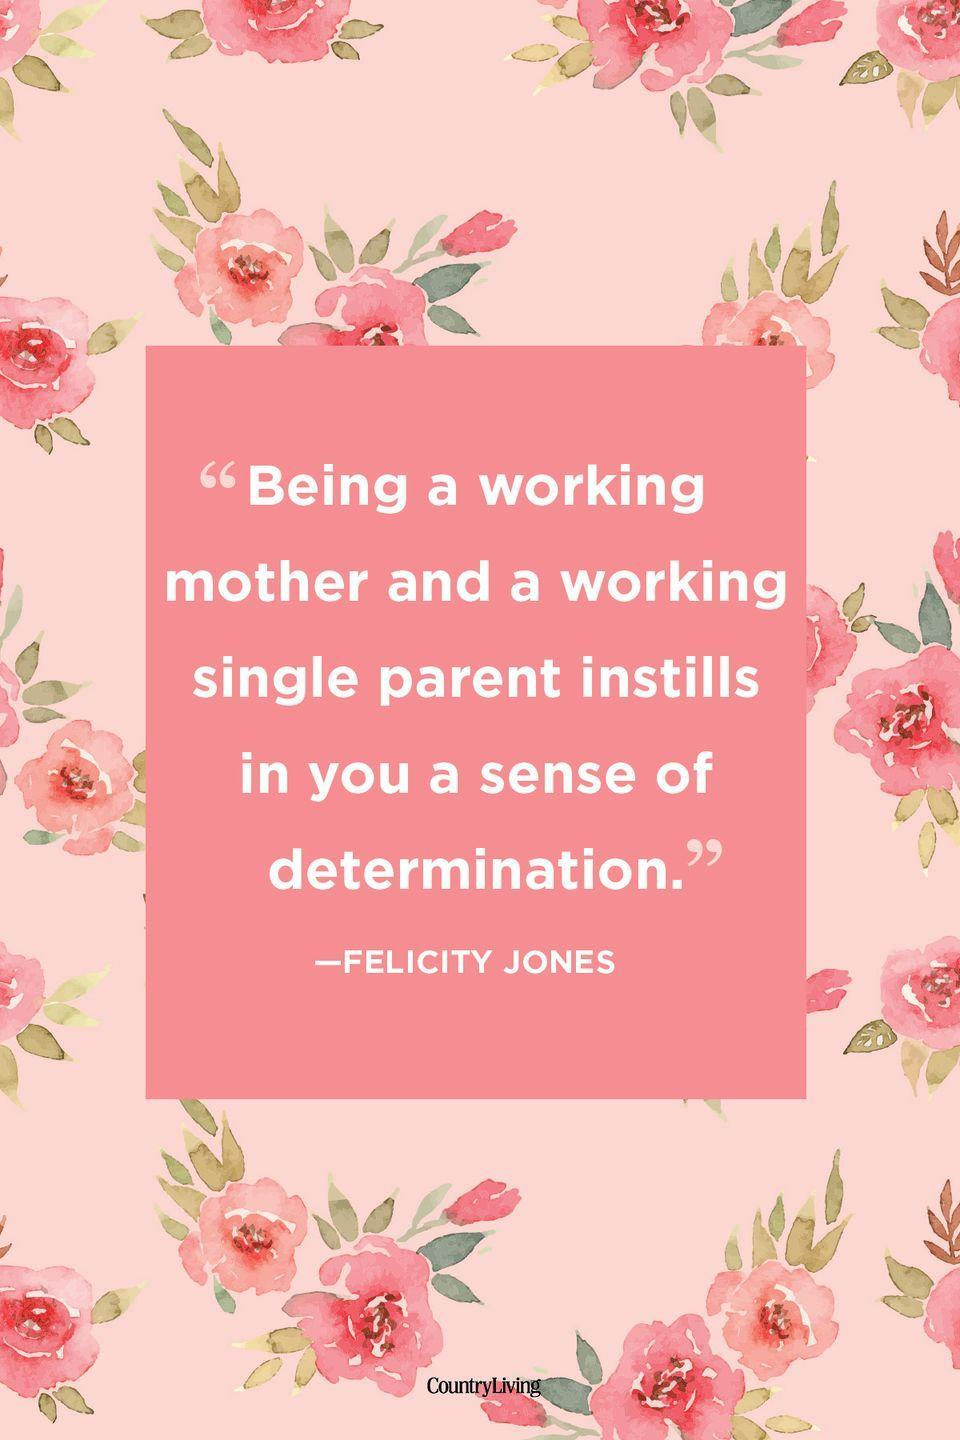 "<p>""Being a working mother and a working single parent instills in you a sense of determination.""</p>"